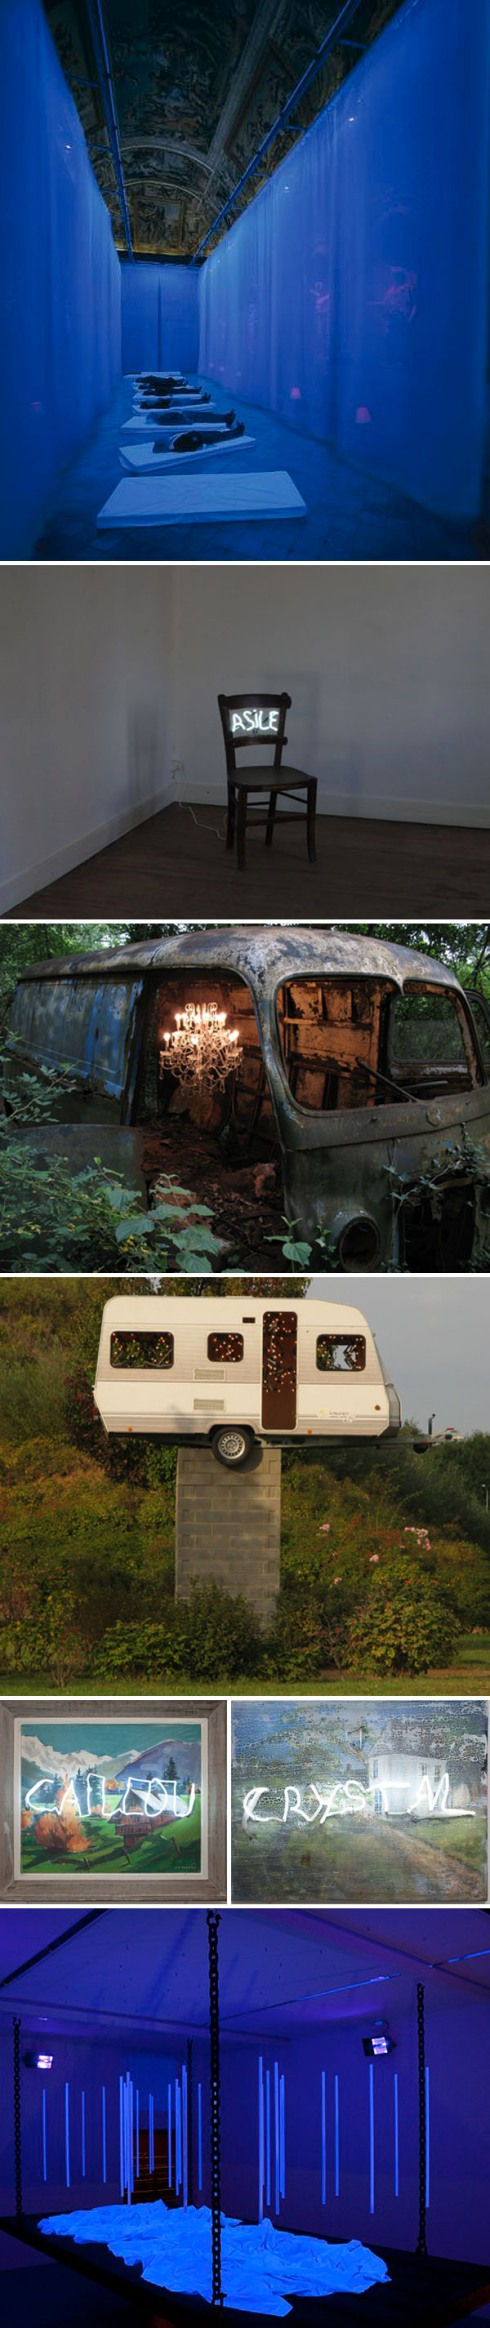 Light installations, neon, cool contemporary art, lumen, trailer trucks with lights, collabcubed